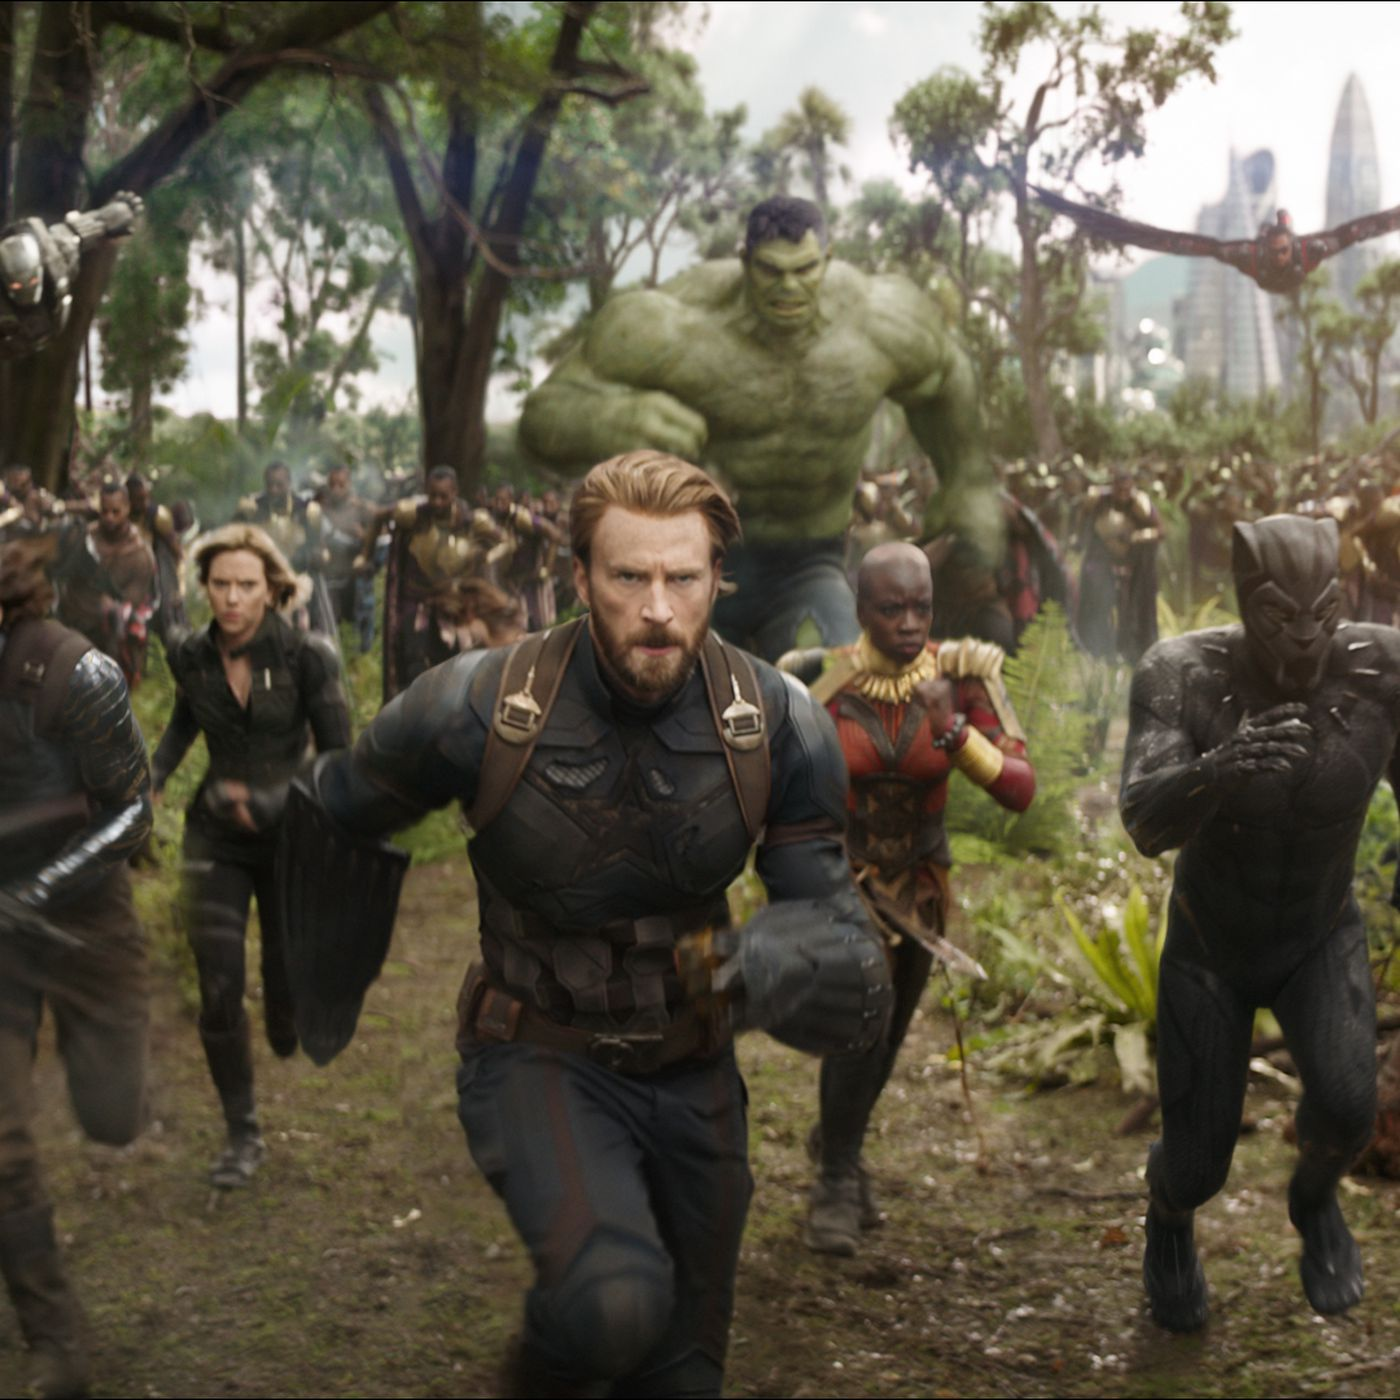 marvel's avengers: infinity war moved up to april 27th - the verge